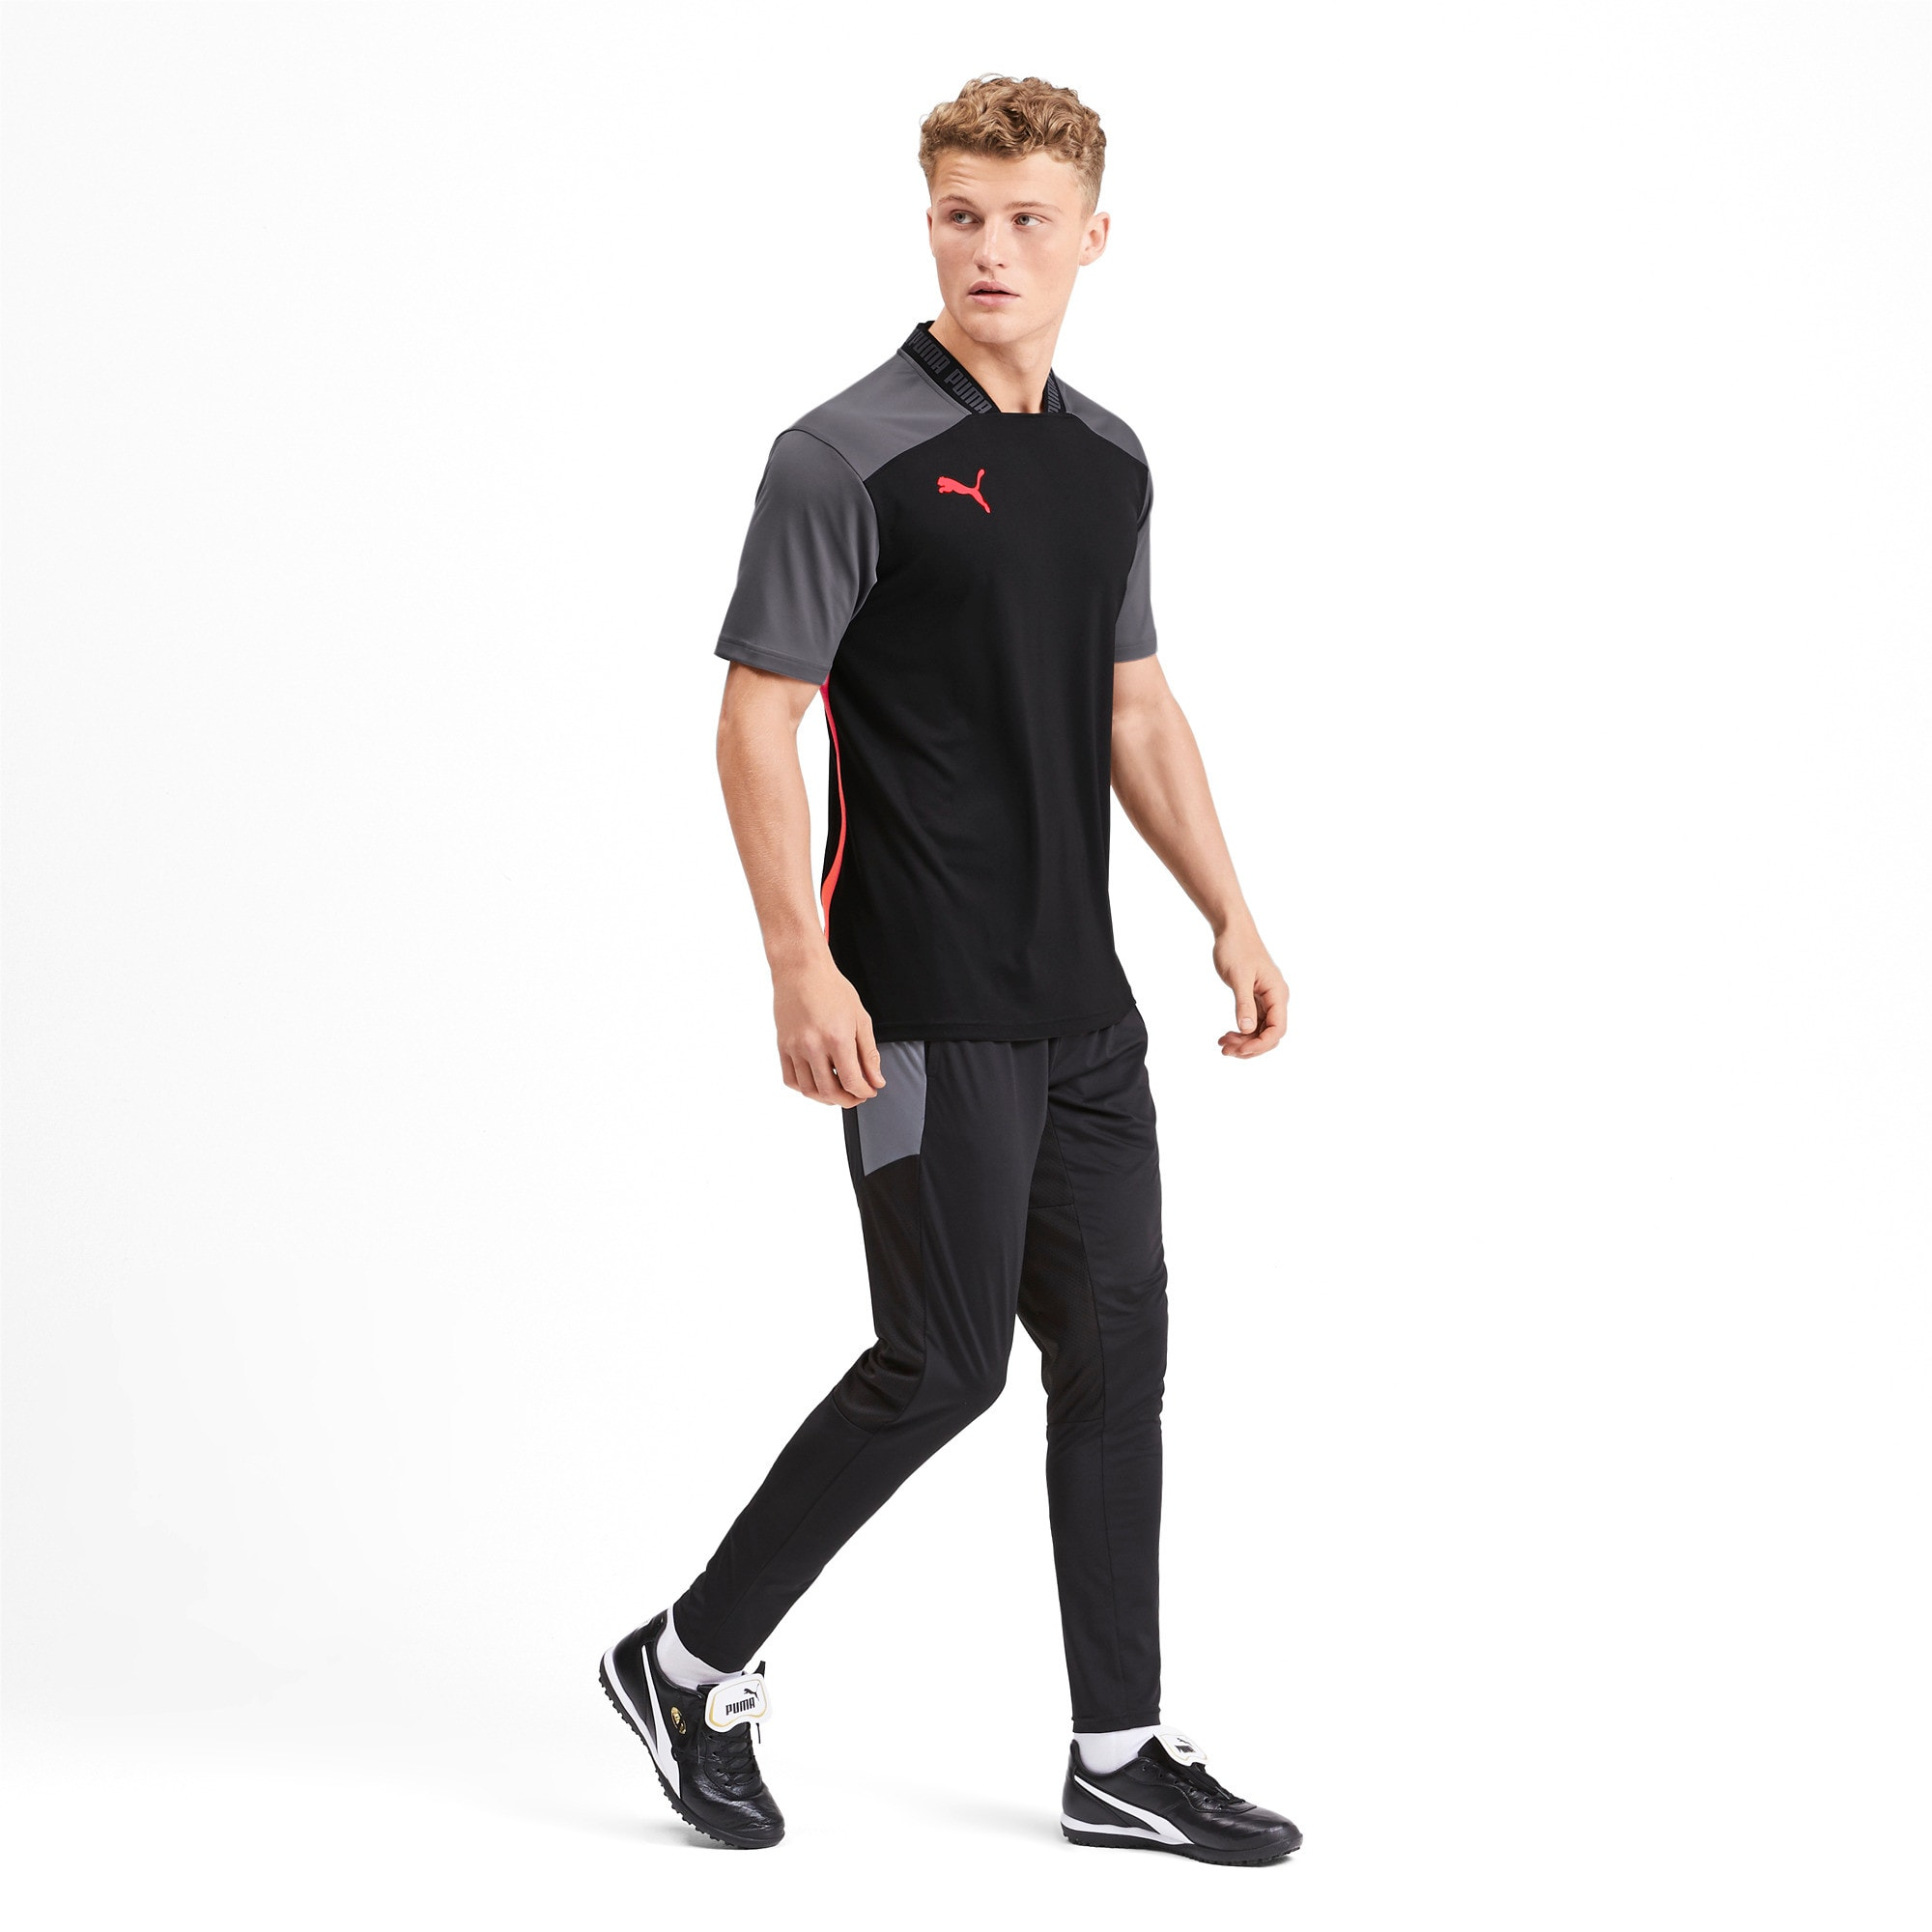 Thumbnail 3 of Pro T-shirt voor heren, Puma Black-Nrgy Red, medium